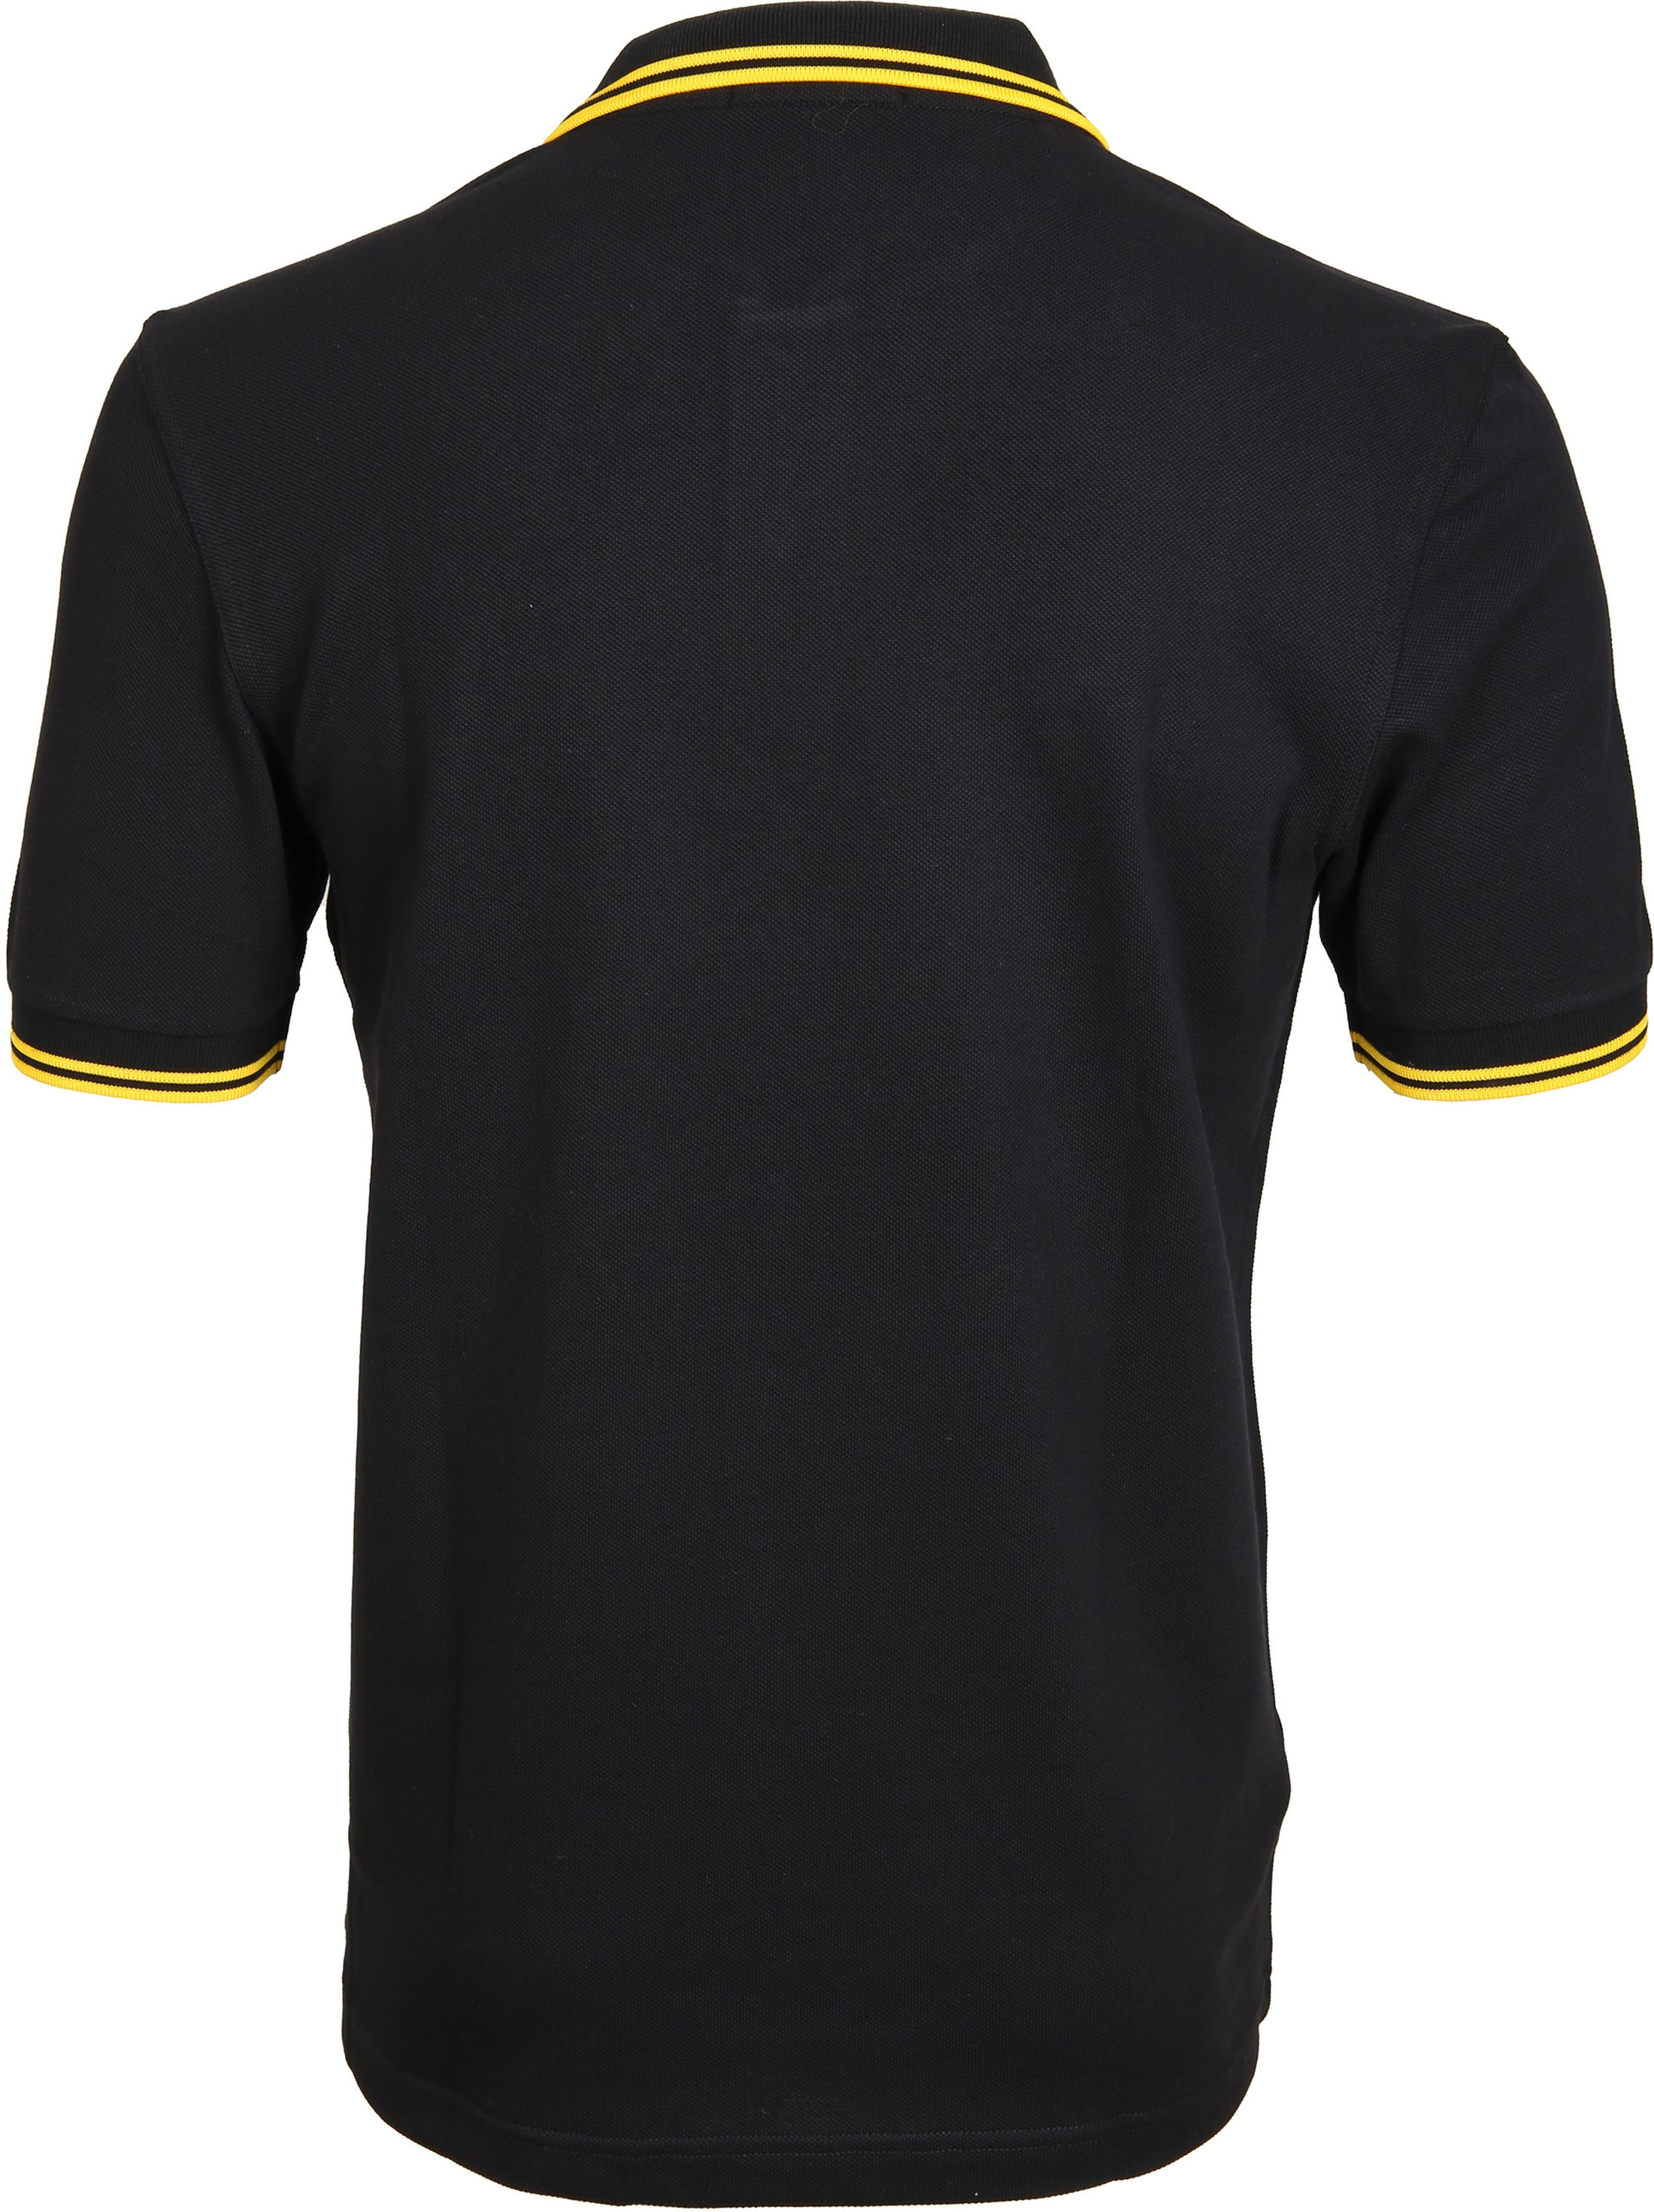 Fred Perry Polo Black Yellow Tip foto 2